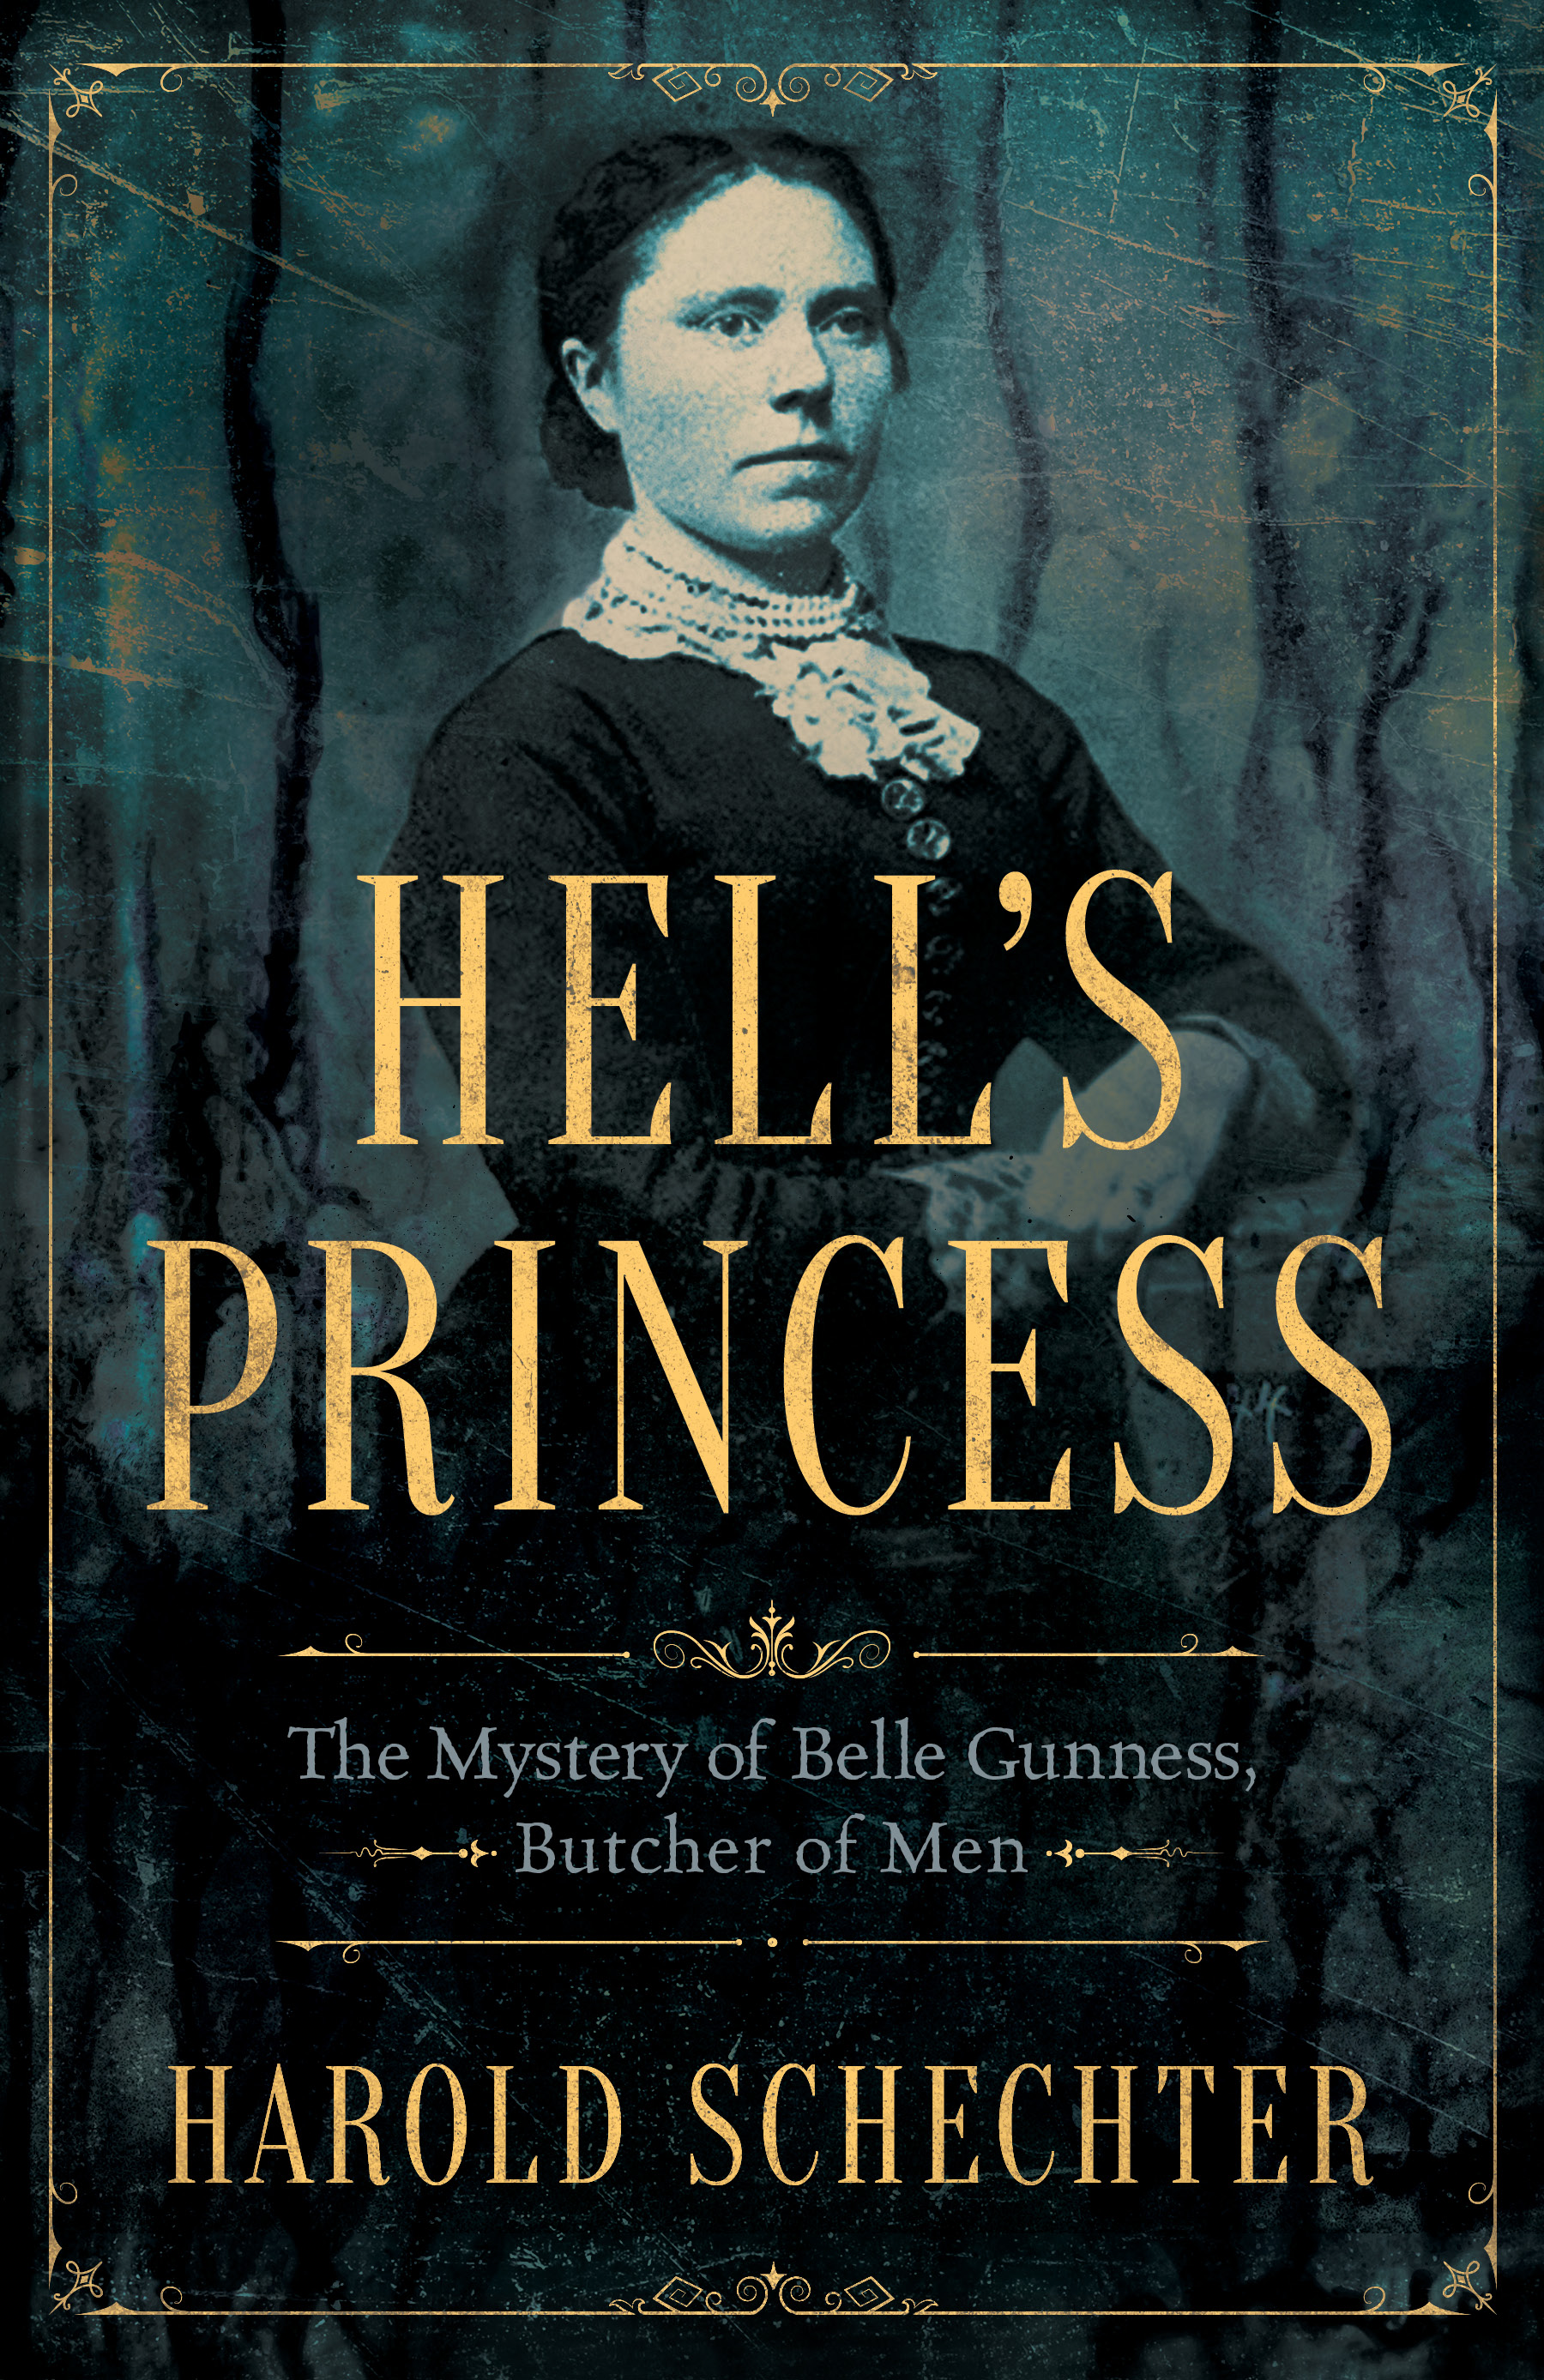 Book Launch: Hell's Princess by Harold Schechter